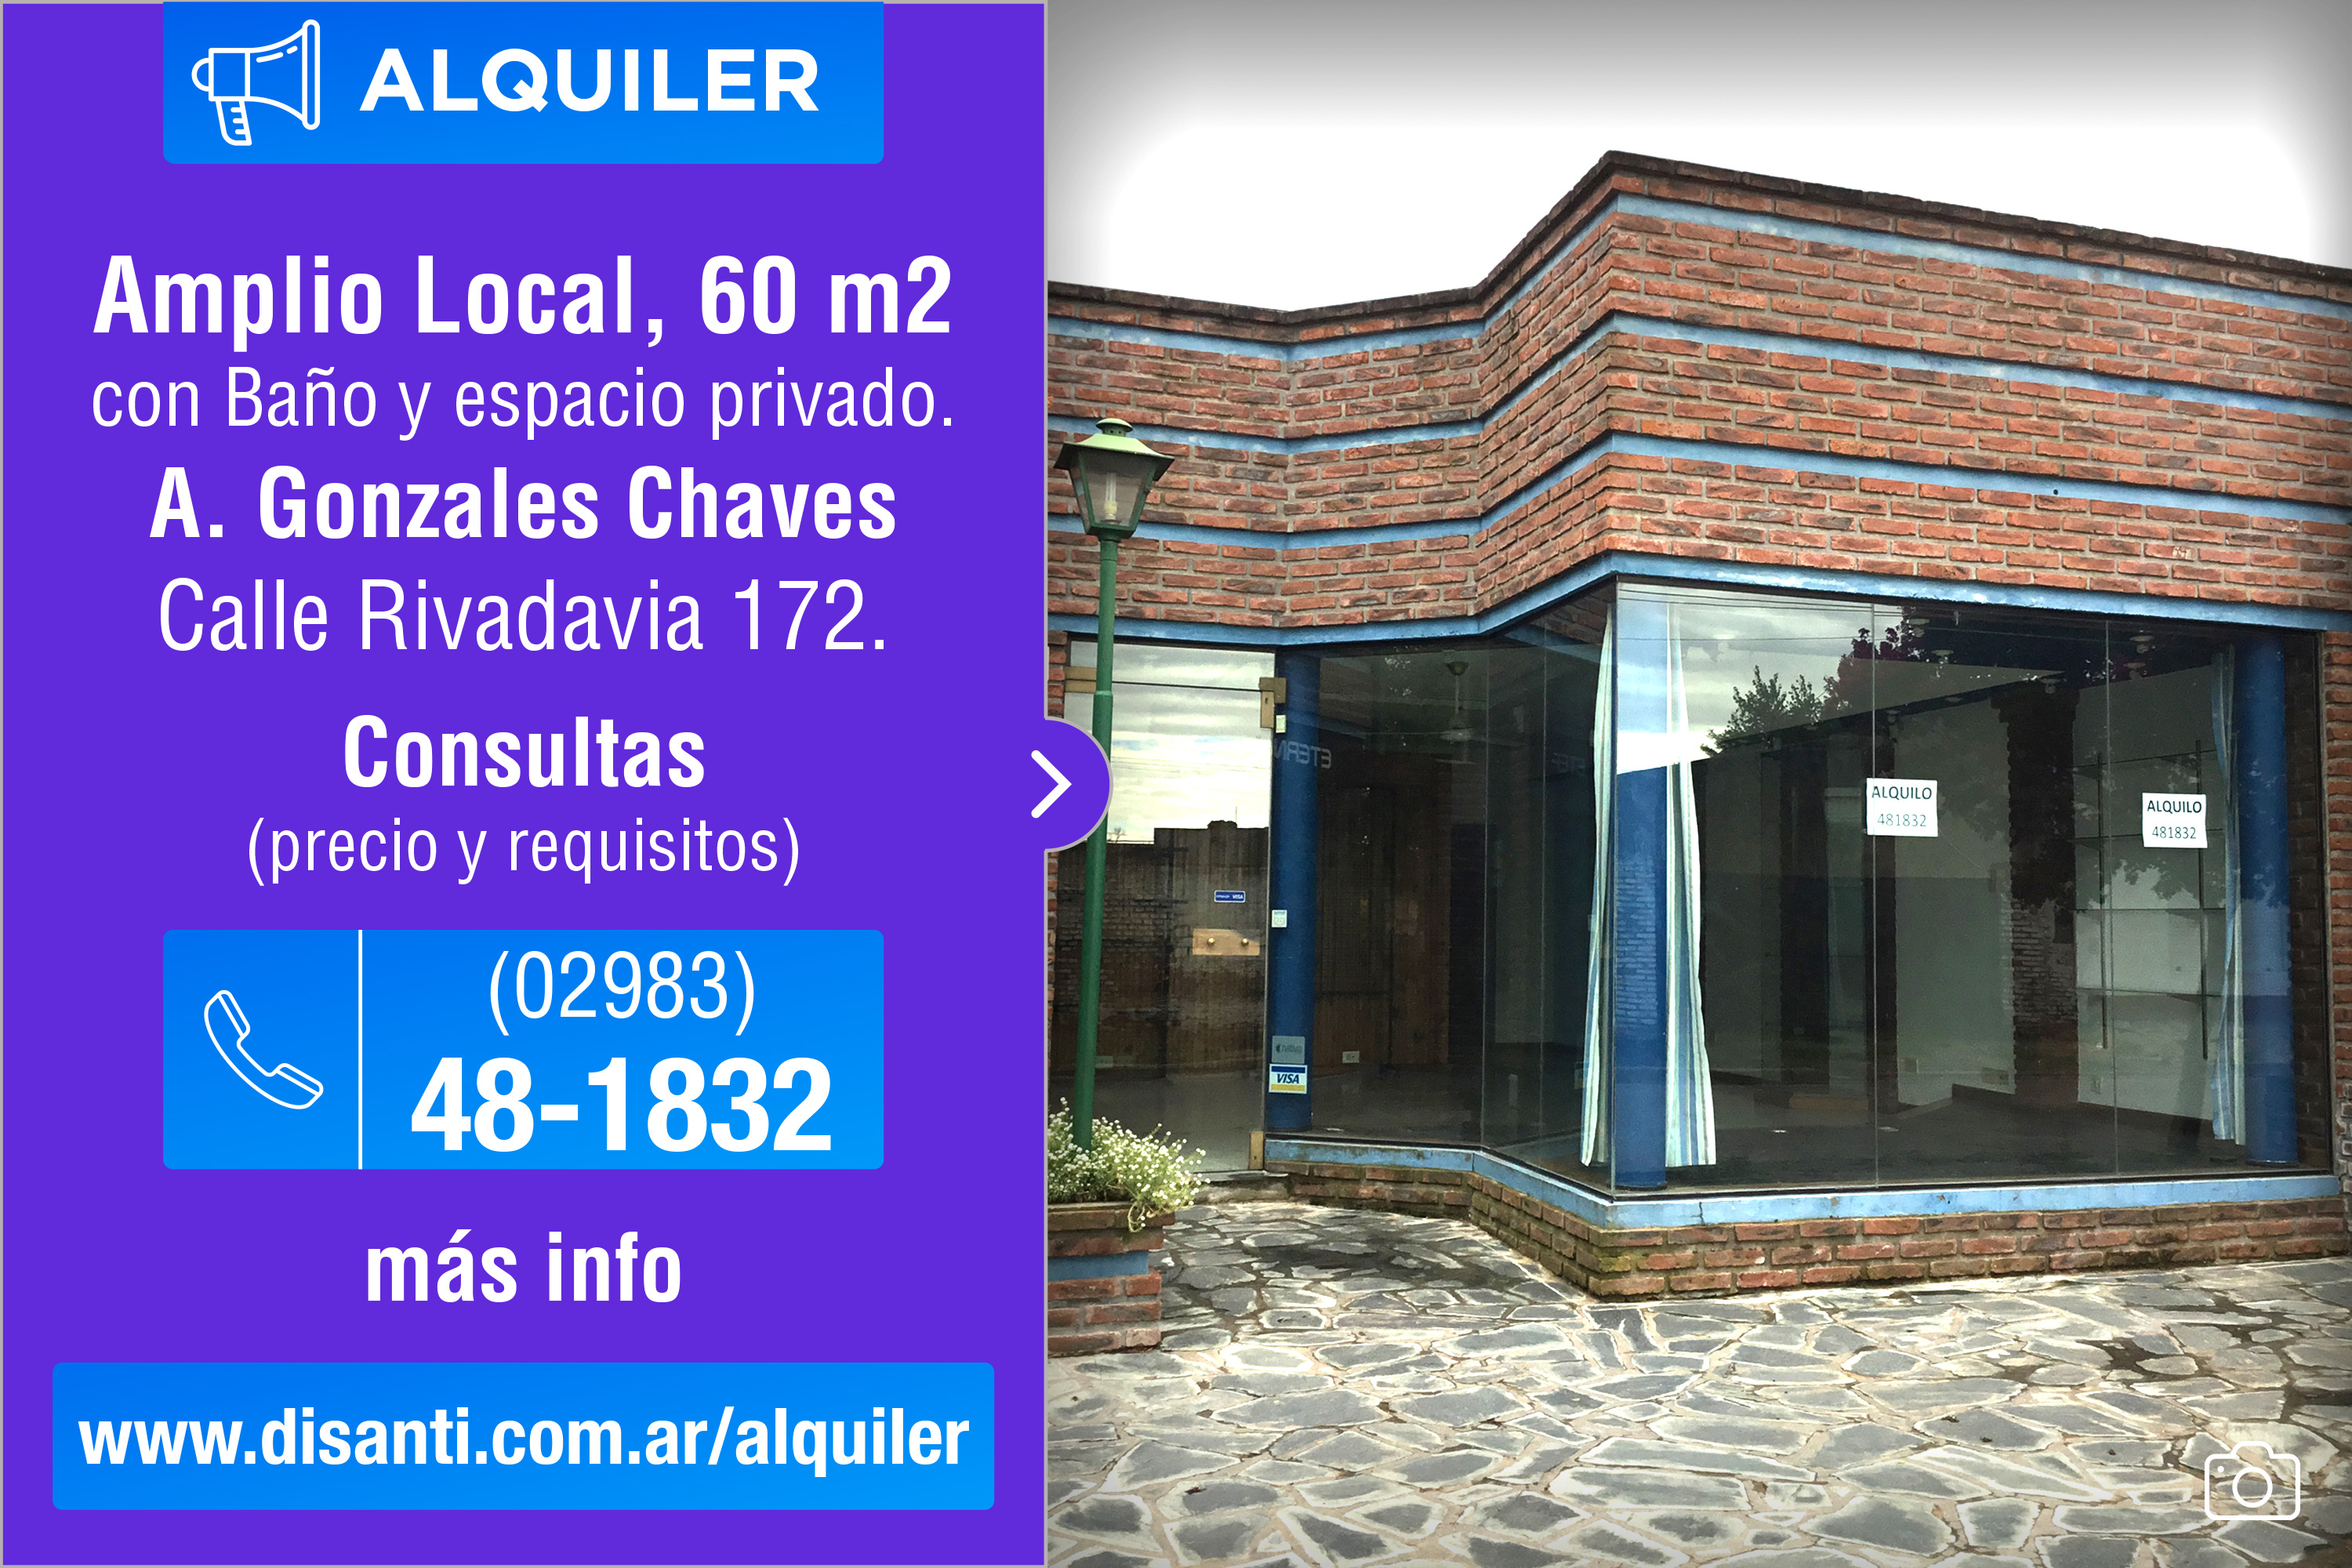 Alquiler Local en G. Chaves